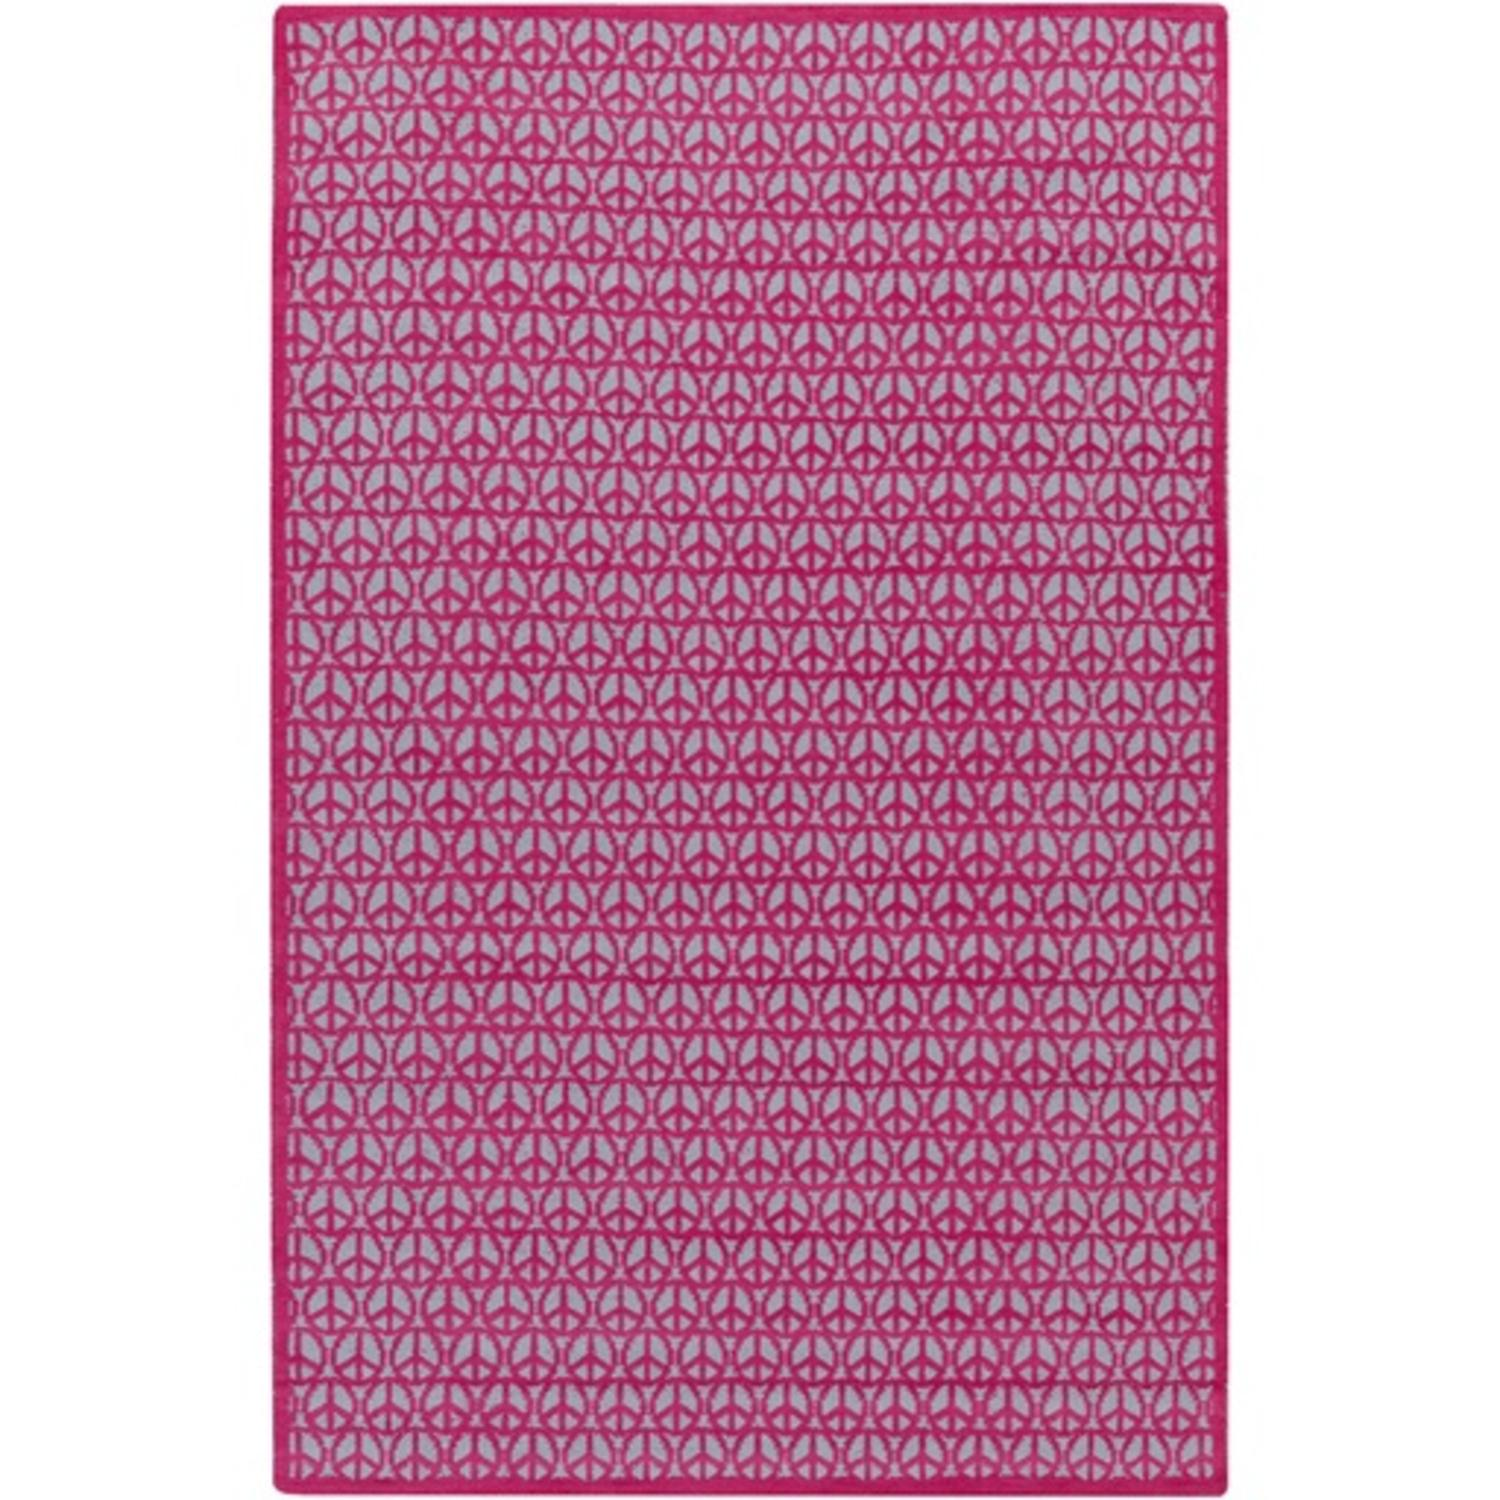 4' x 6' Land of Peace Hot Pink and Slate Gray Hand Woven Wool Area Throw Rug